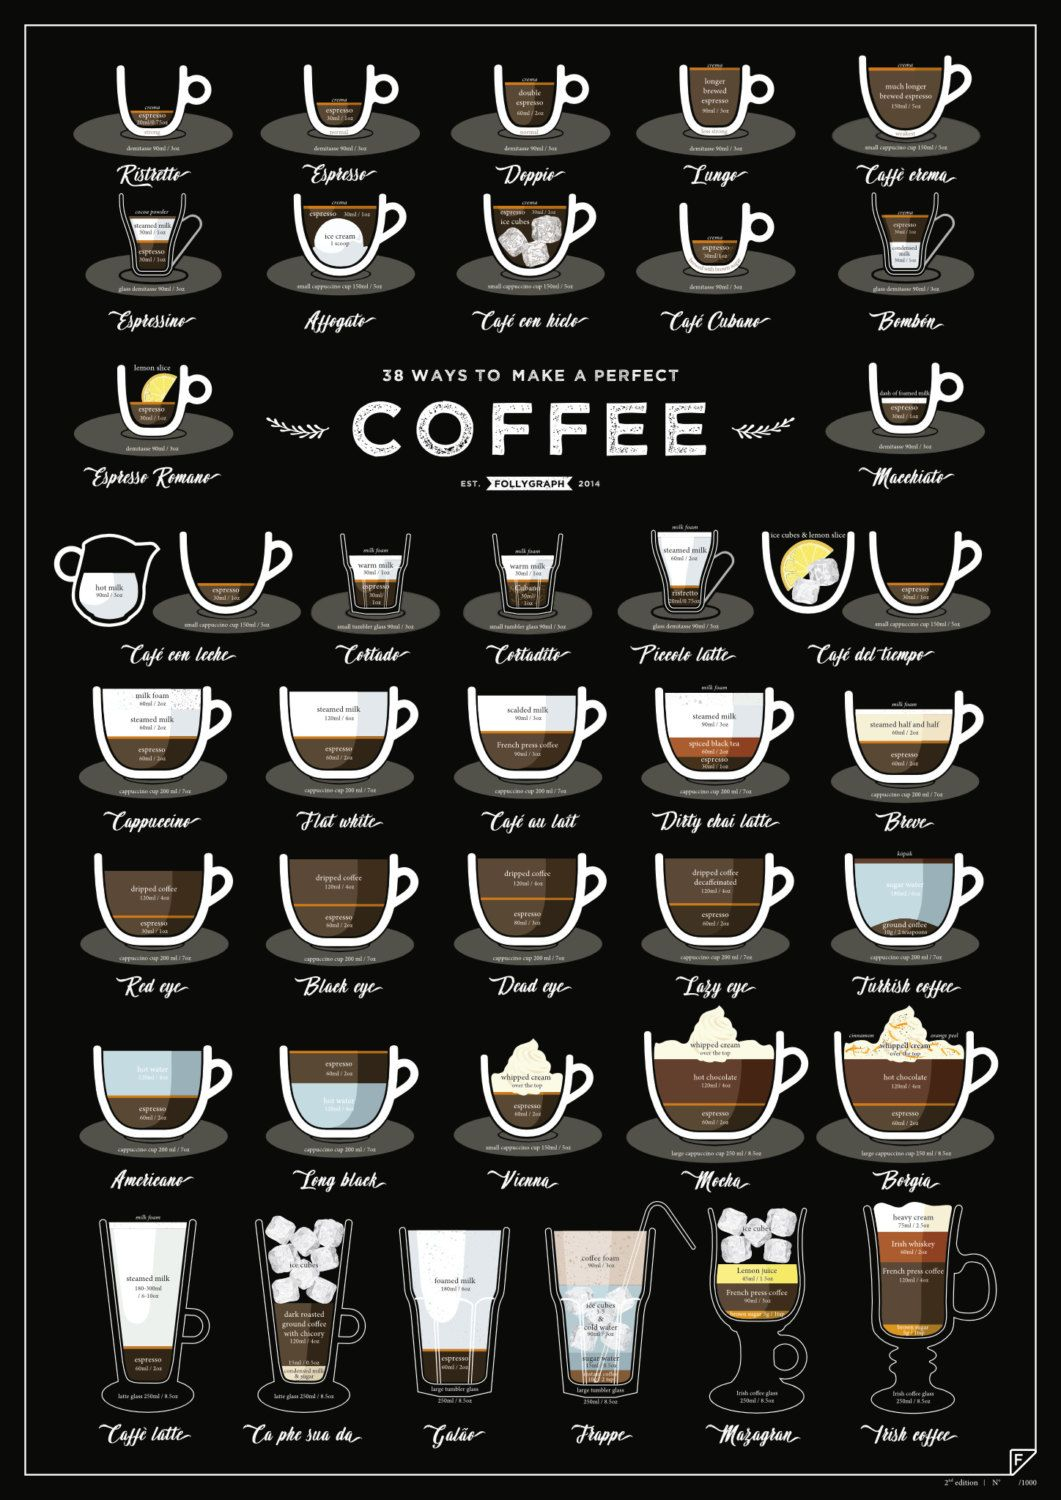 Kaffee Poster 38 Ways To Make A Perfect Coffee 2nd Edition Home